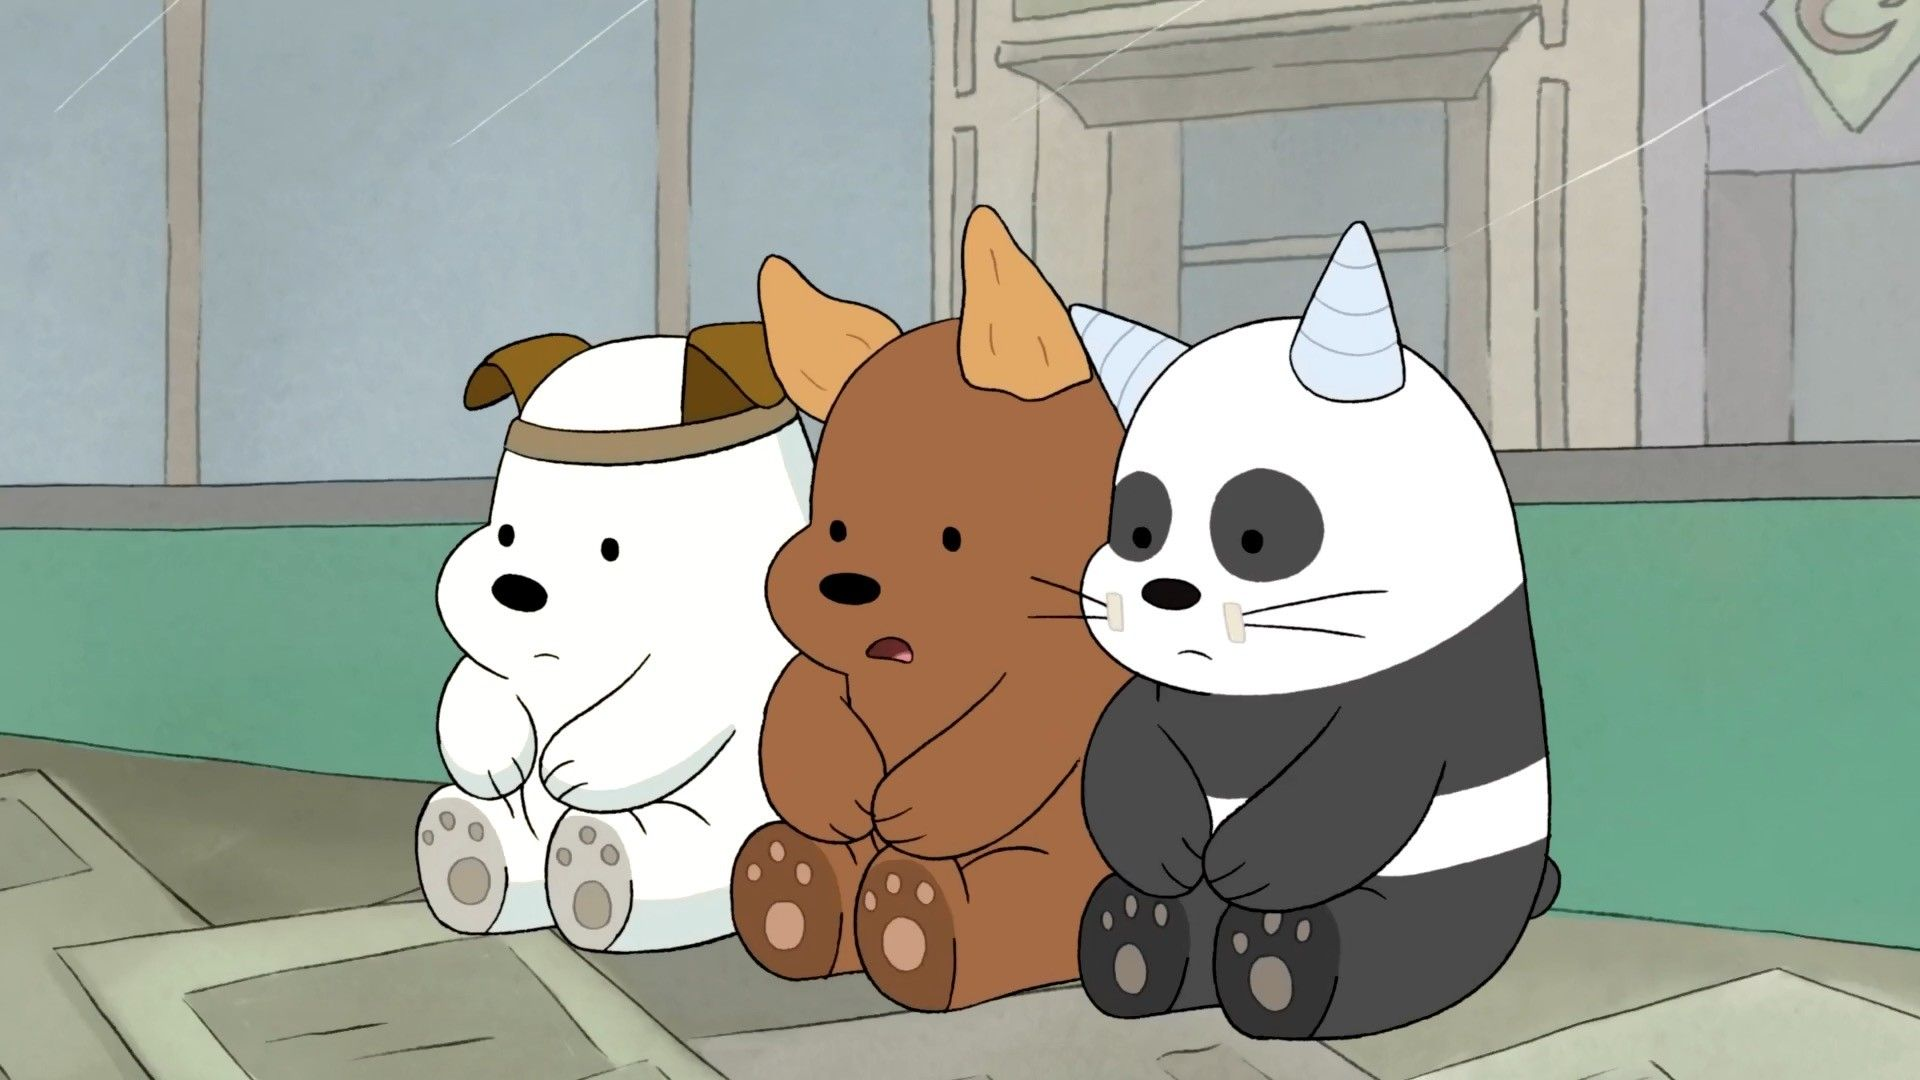 We Bare Bears Wallpaper 94 Images Throughout The Most Brilliant We Bare Bears Wallpaper Landscap In 2020 Bear Wallpaper We Bare Bears Wallpapers Ice Bear We Bare Bears